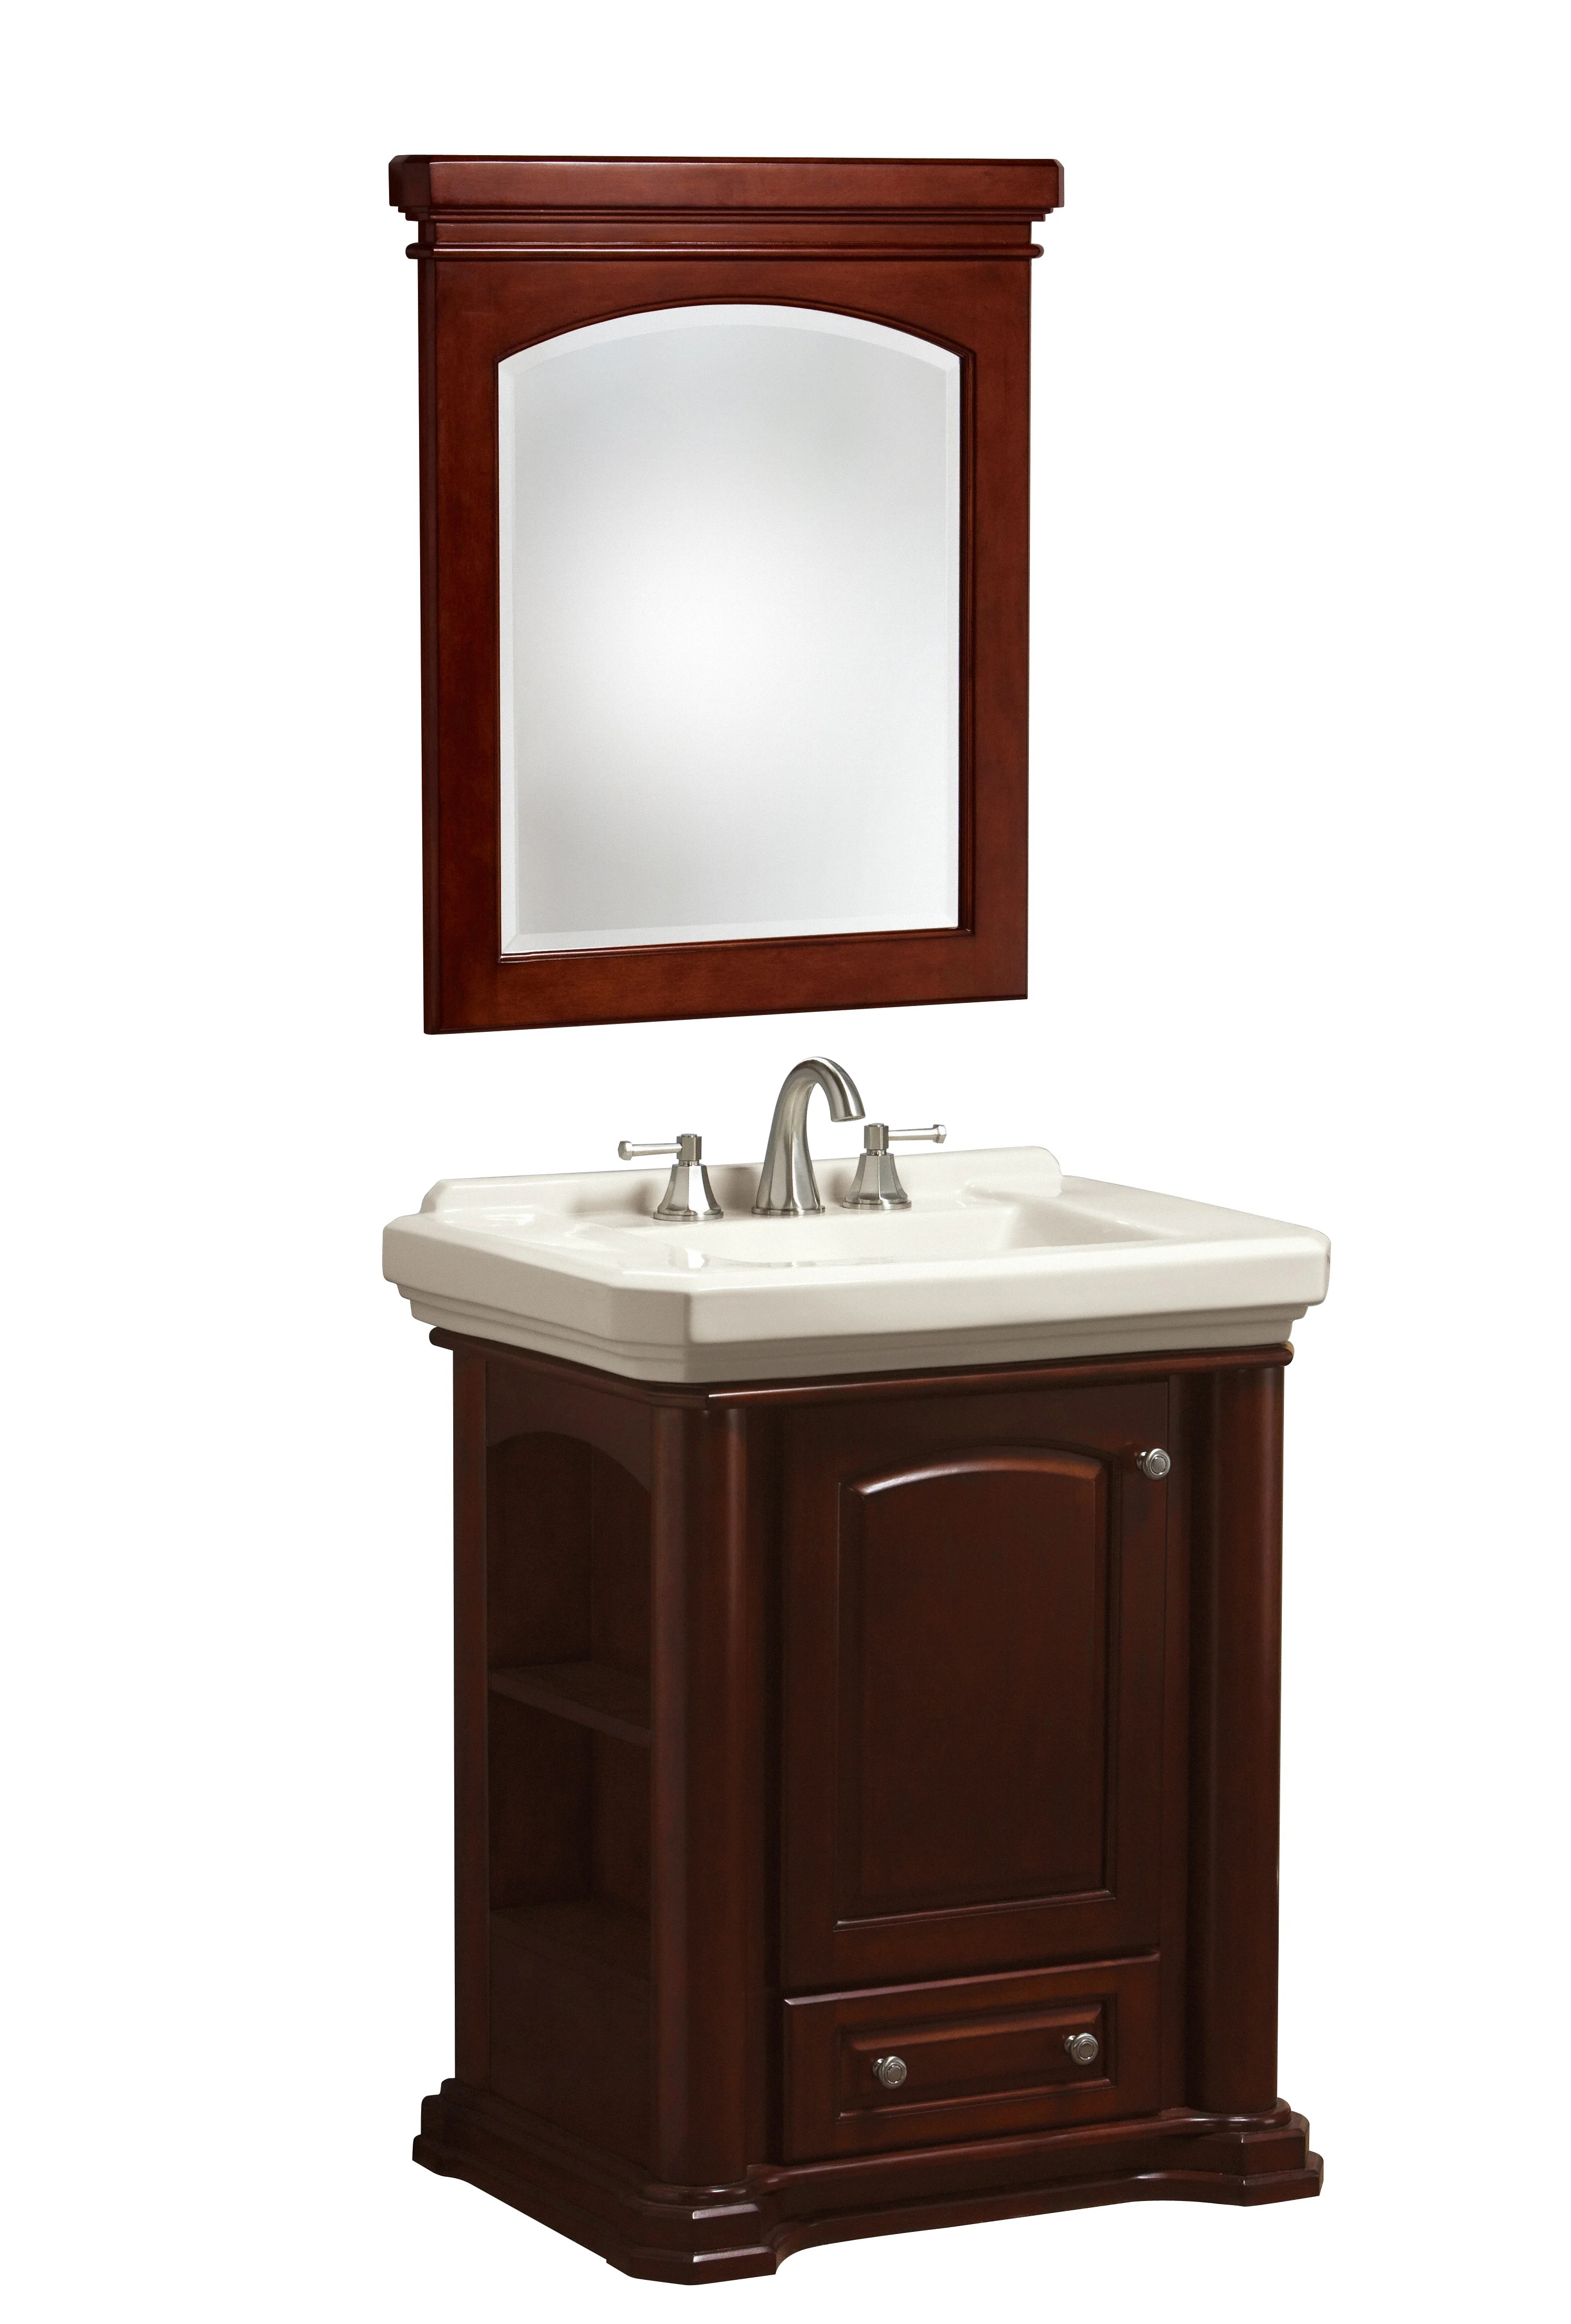 Danze D990065bc Mahogany Biscuit 28 5 8 Cirtangular Knightsbridge Vanity Combo Includes Vanity Sink Mirrored Cabinet And Toilet Faucetdirect Com